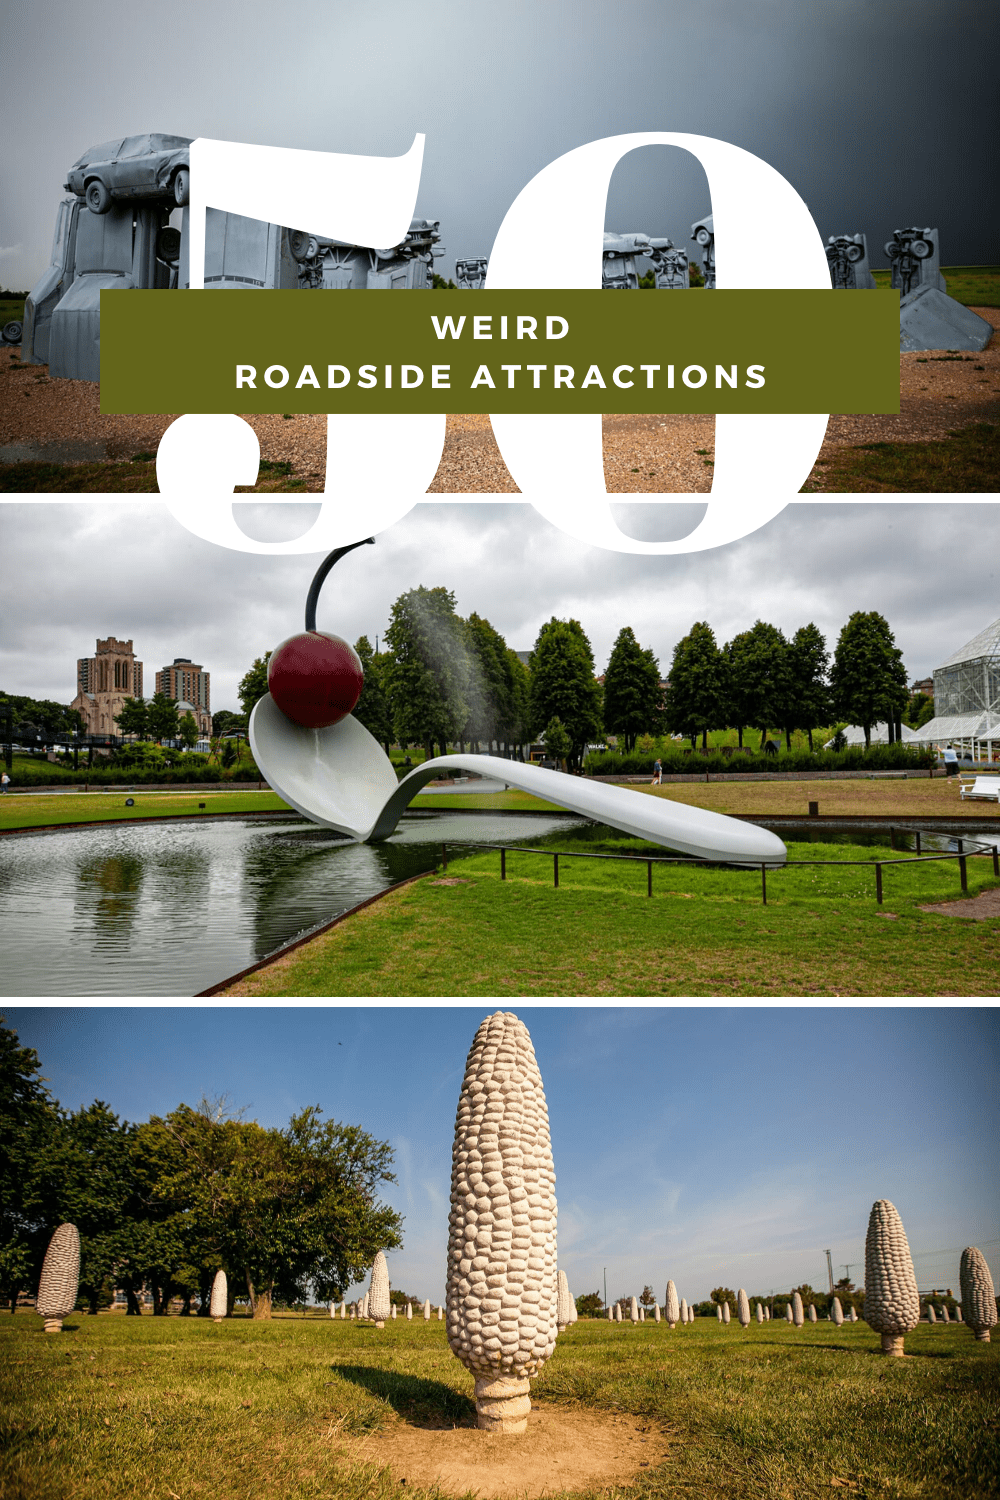 These weird roadside attractions make for fun stops on your next American road trip. Visit world's largest things, quirky outdoor art, and other oddities on a road trip around the United States! #RoadsideAttraction #RoadsideAttractions #WeirdRoadsideAttractions #VintageRoadsideAttractions #RoadTripStops #WorldsLargestRoadsideAttractions #RoadTrip #USARoadsideAttractions #AmericanRoadsideAttractions #USA #America